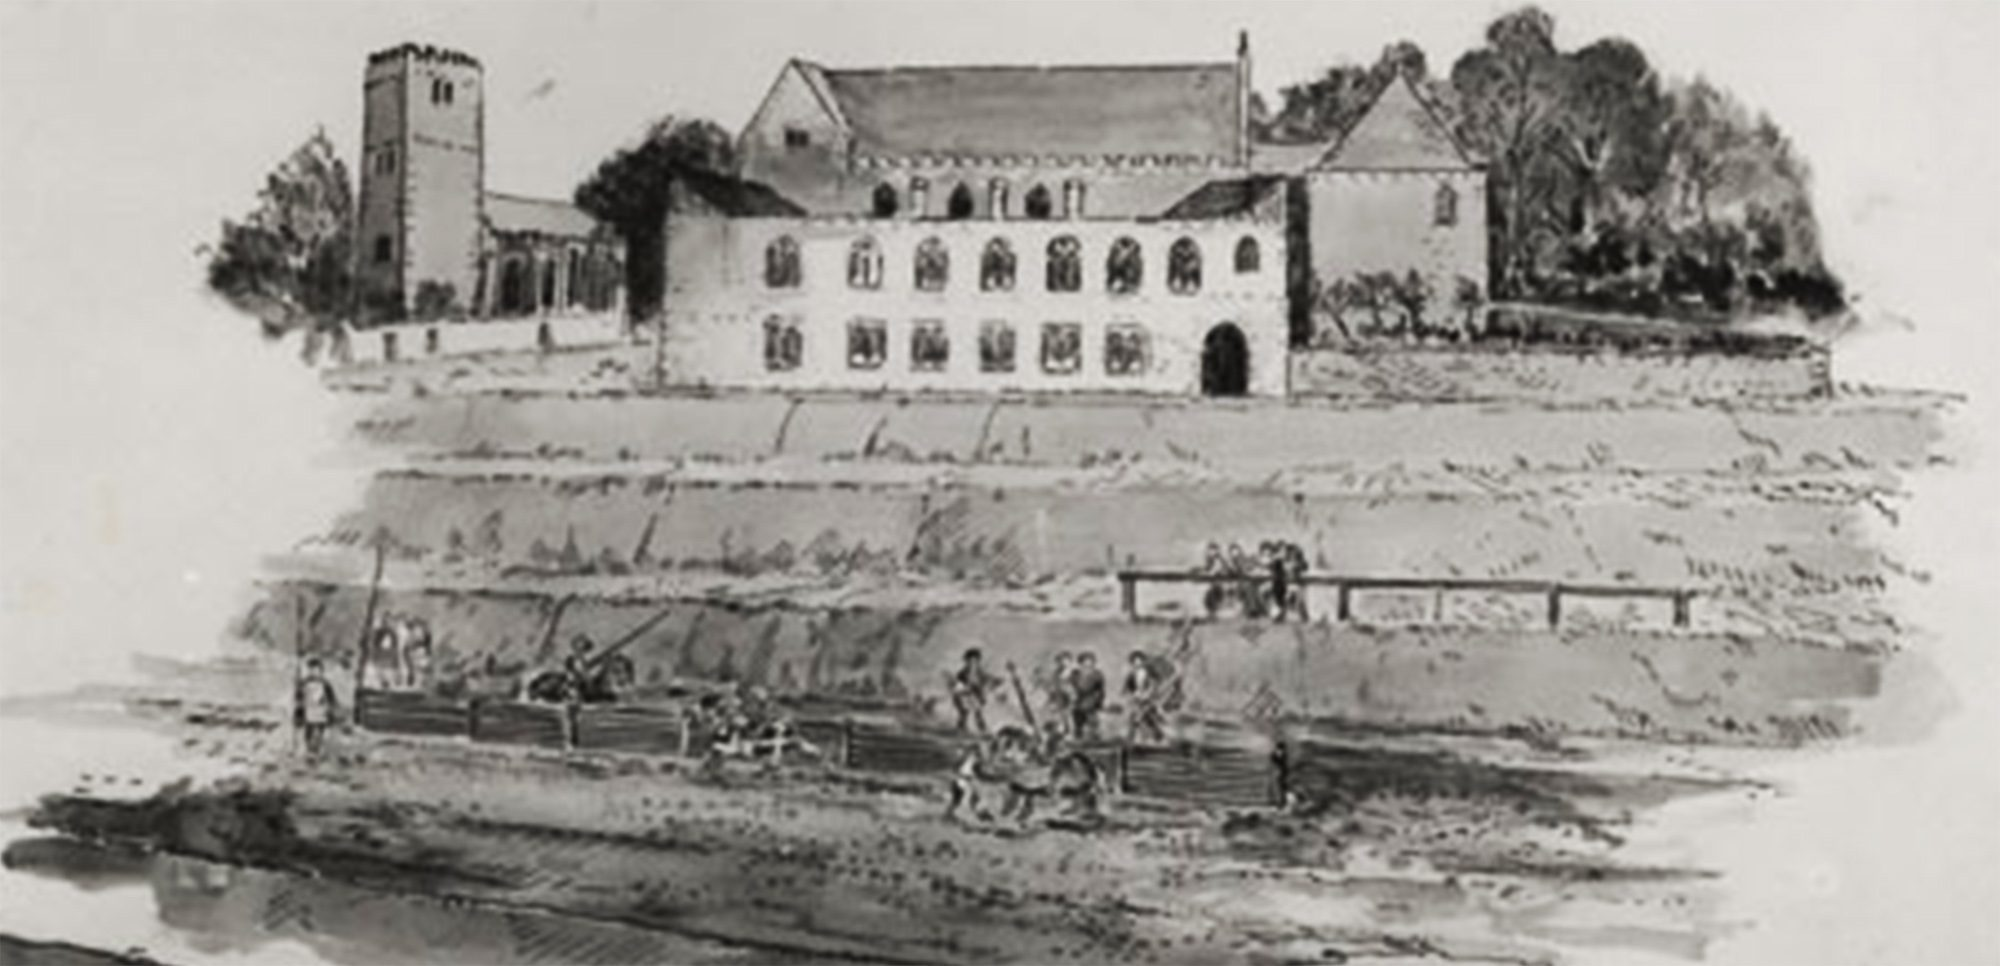 Artist's impression of tiltyard, made in the 1300s